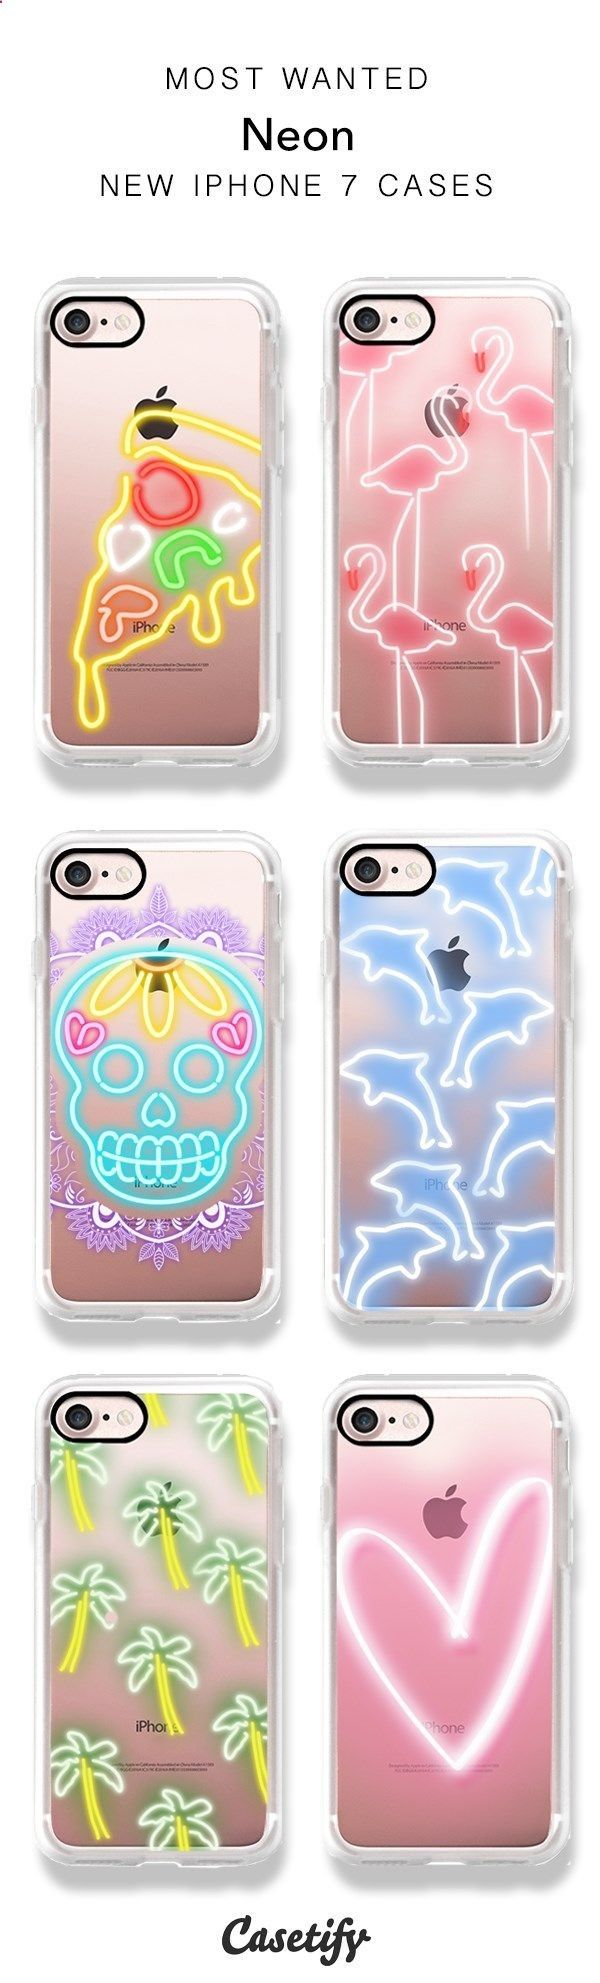 Cell Phone Cases - Light it up! Neon clear iPhone cases. Available for iPhone 7/7 plus/6/6s/5. Shop the Neon Collection here > www.casetify.com/... - Welcome to the Cell Phone Cases Store, where you'll find great prices on a wide range of different cases for your cell phone (IPhone - Samsung)